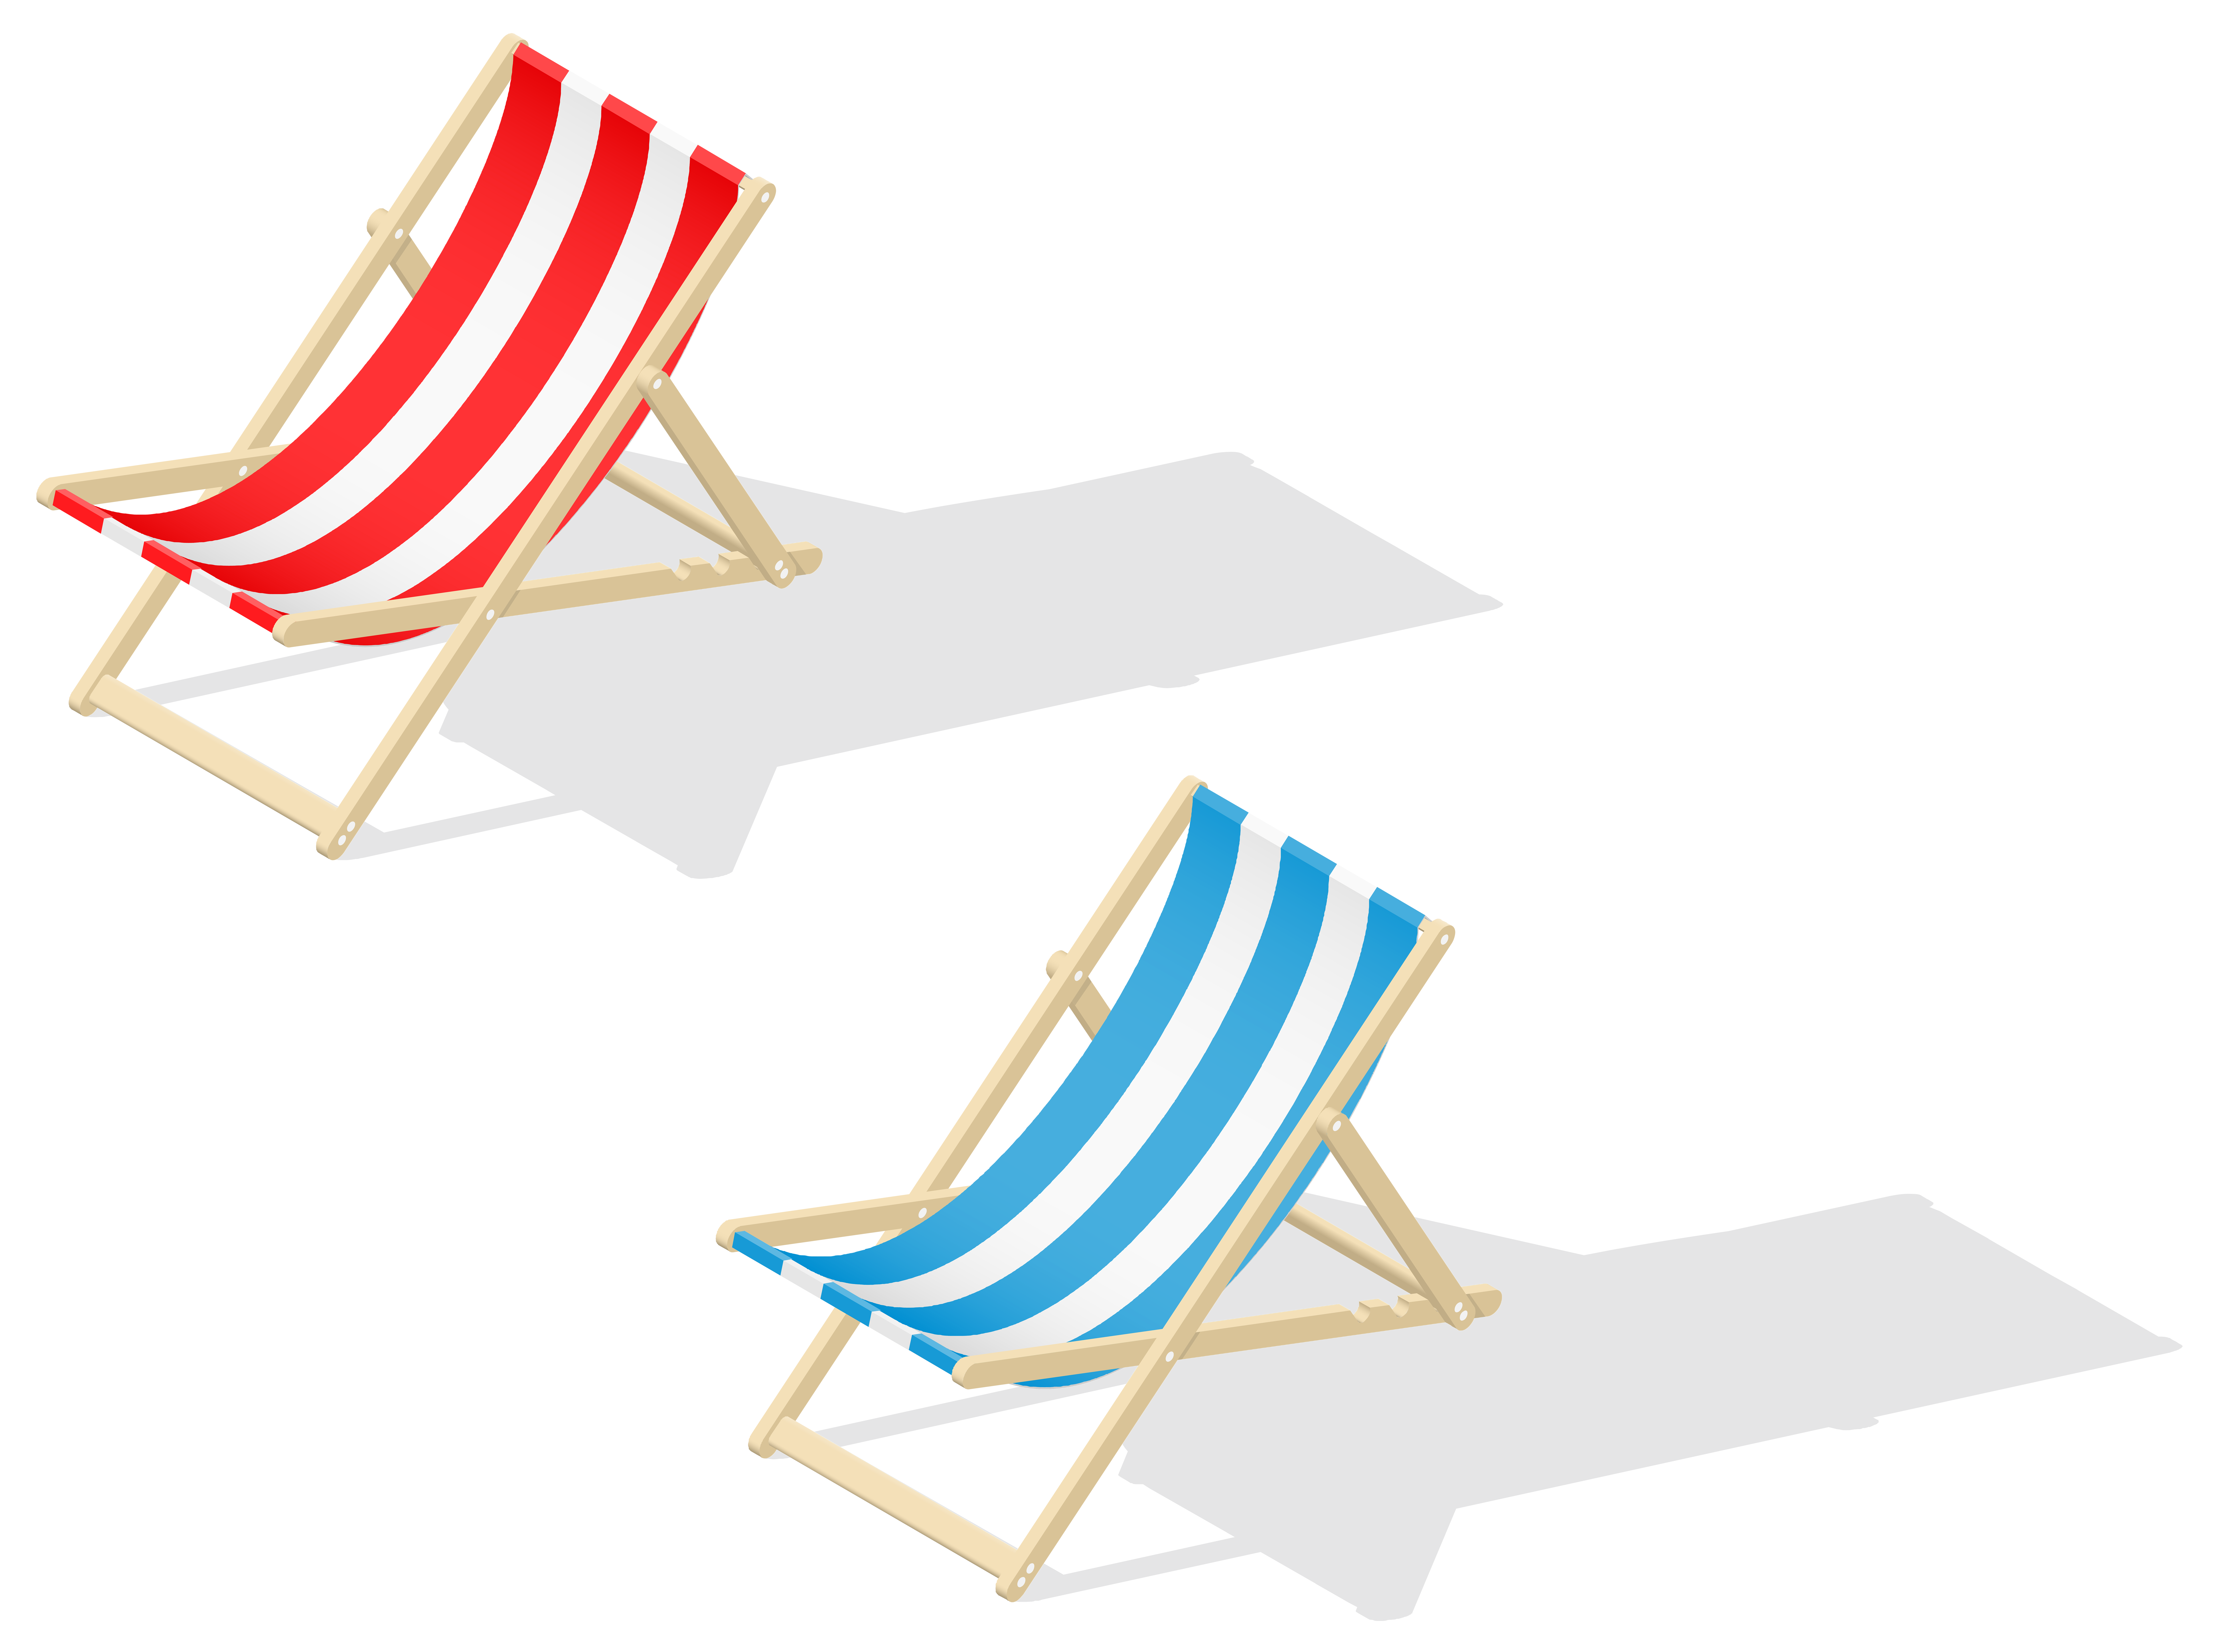 10000x7446 Beach Chairs Transparent Png Clip Art Imageu200b Gallery